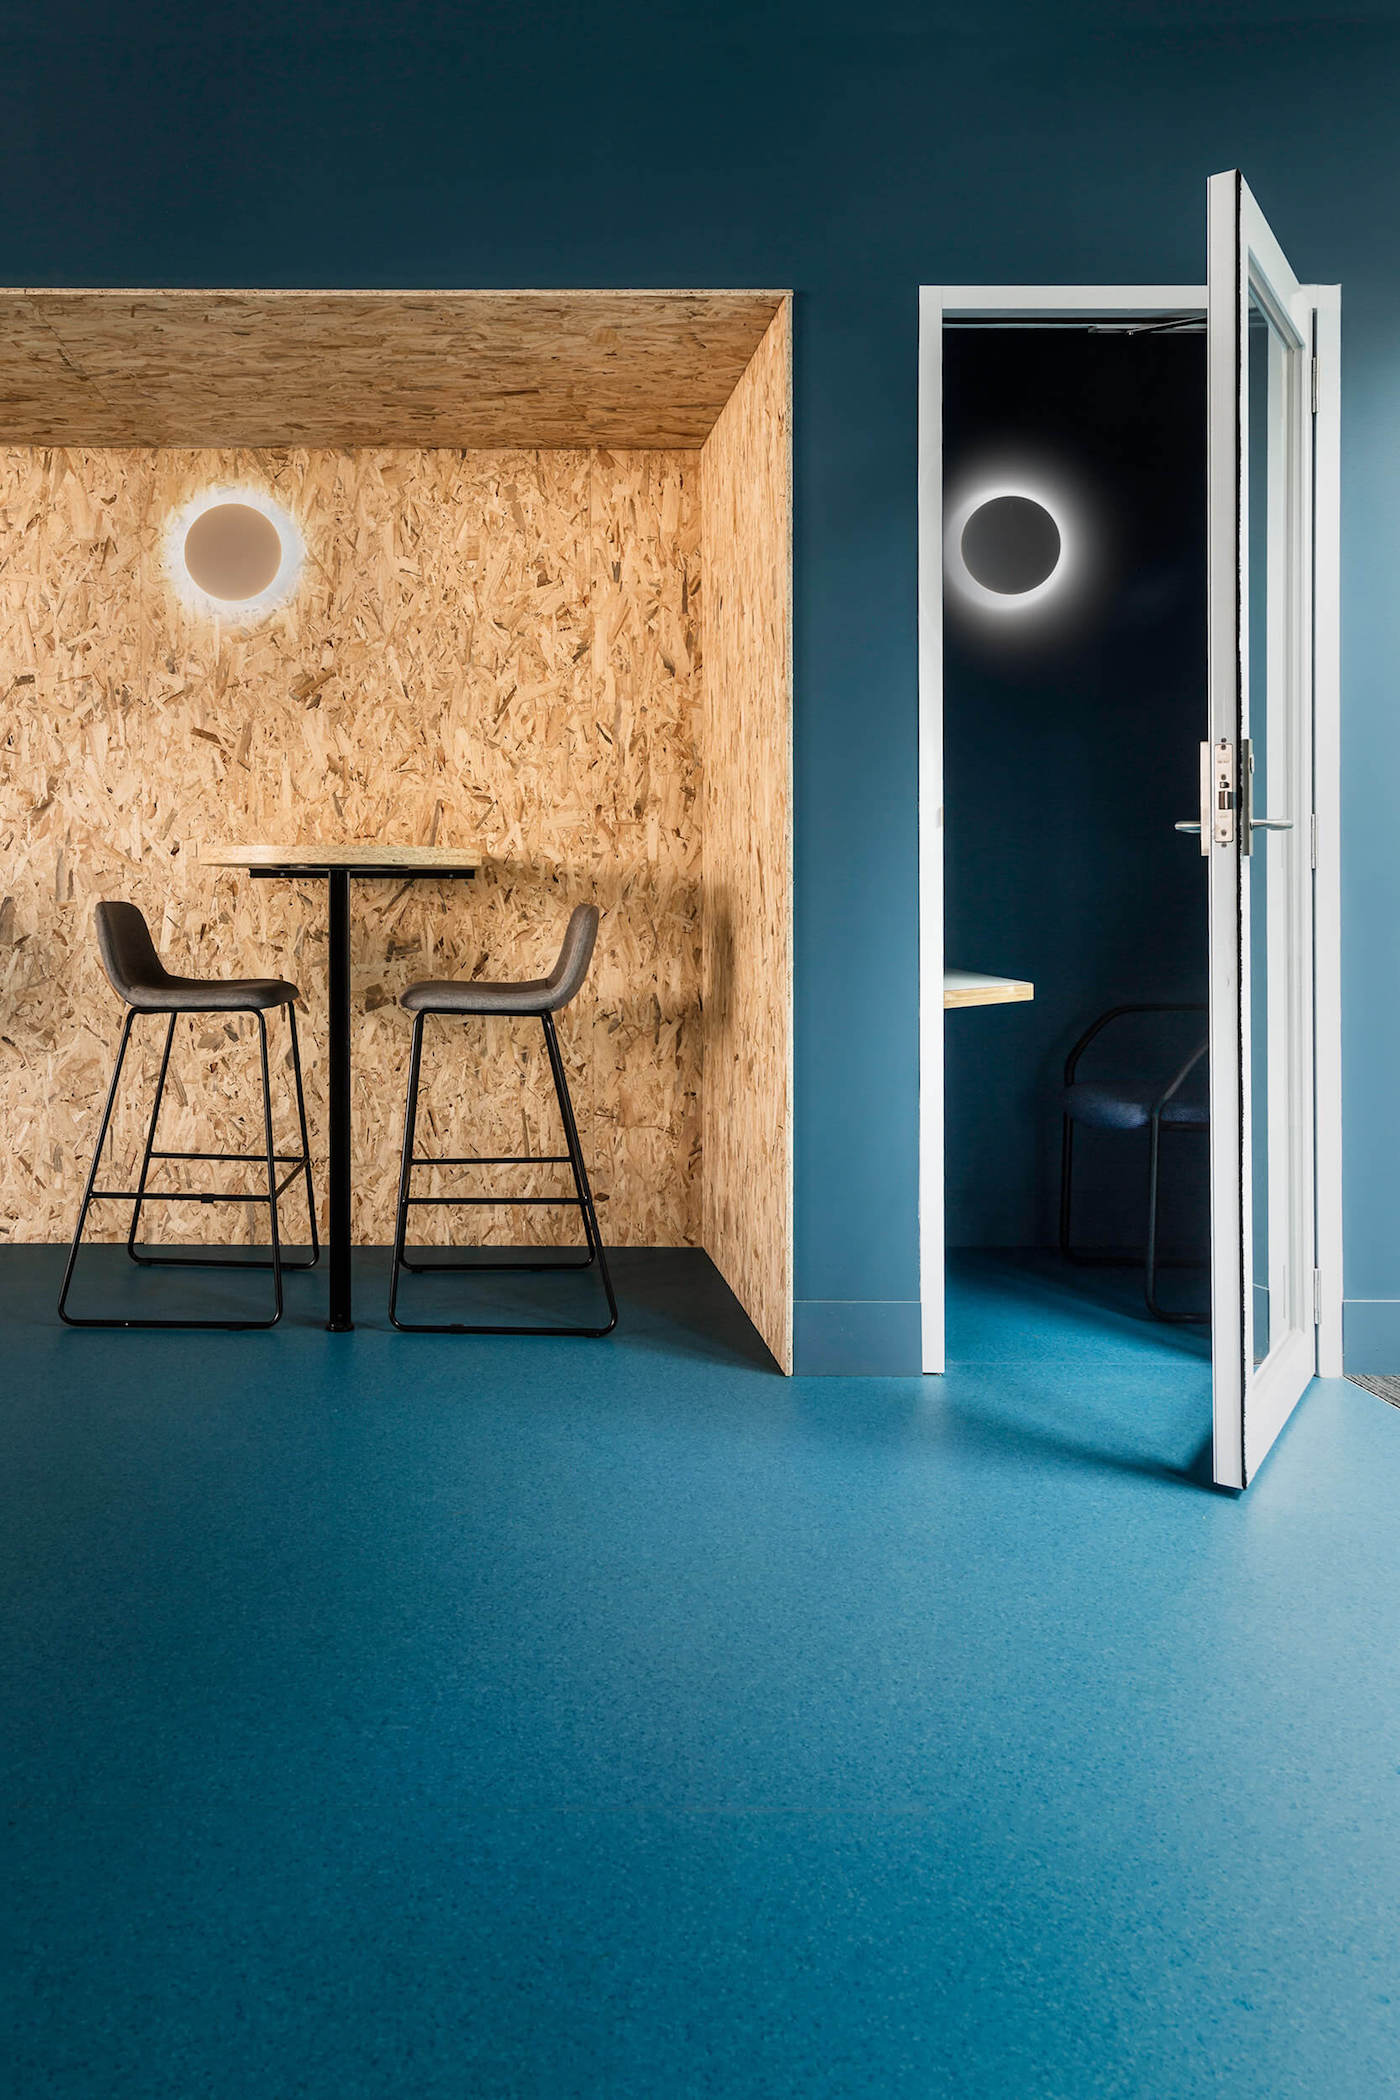 Blue carpet, blue walls with OSB alcove